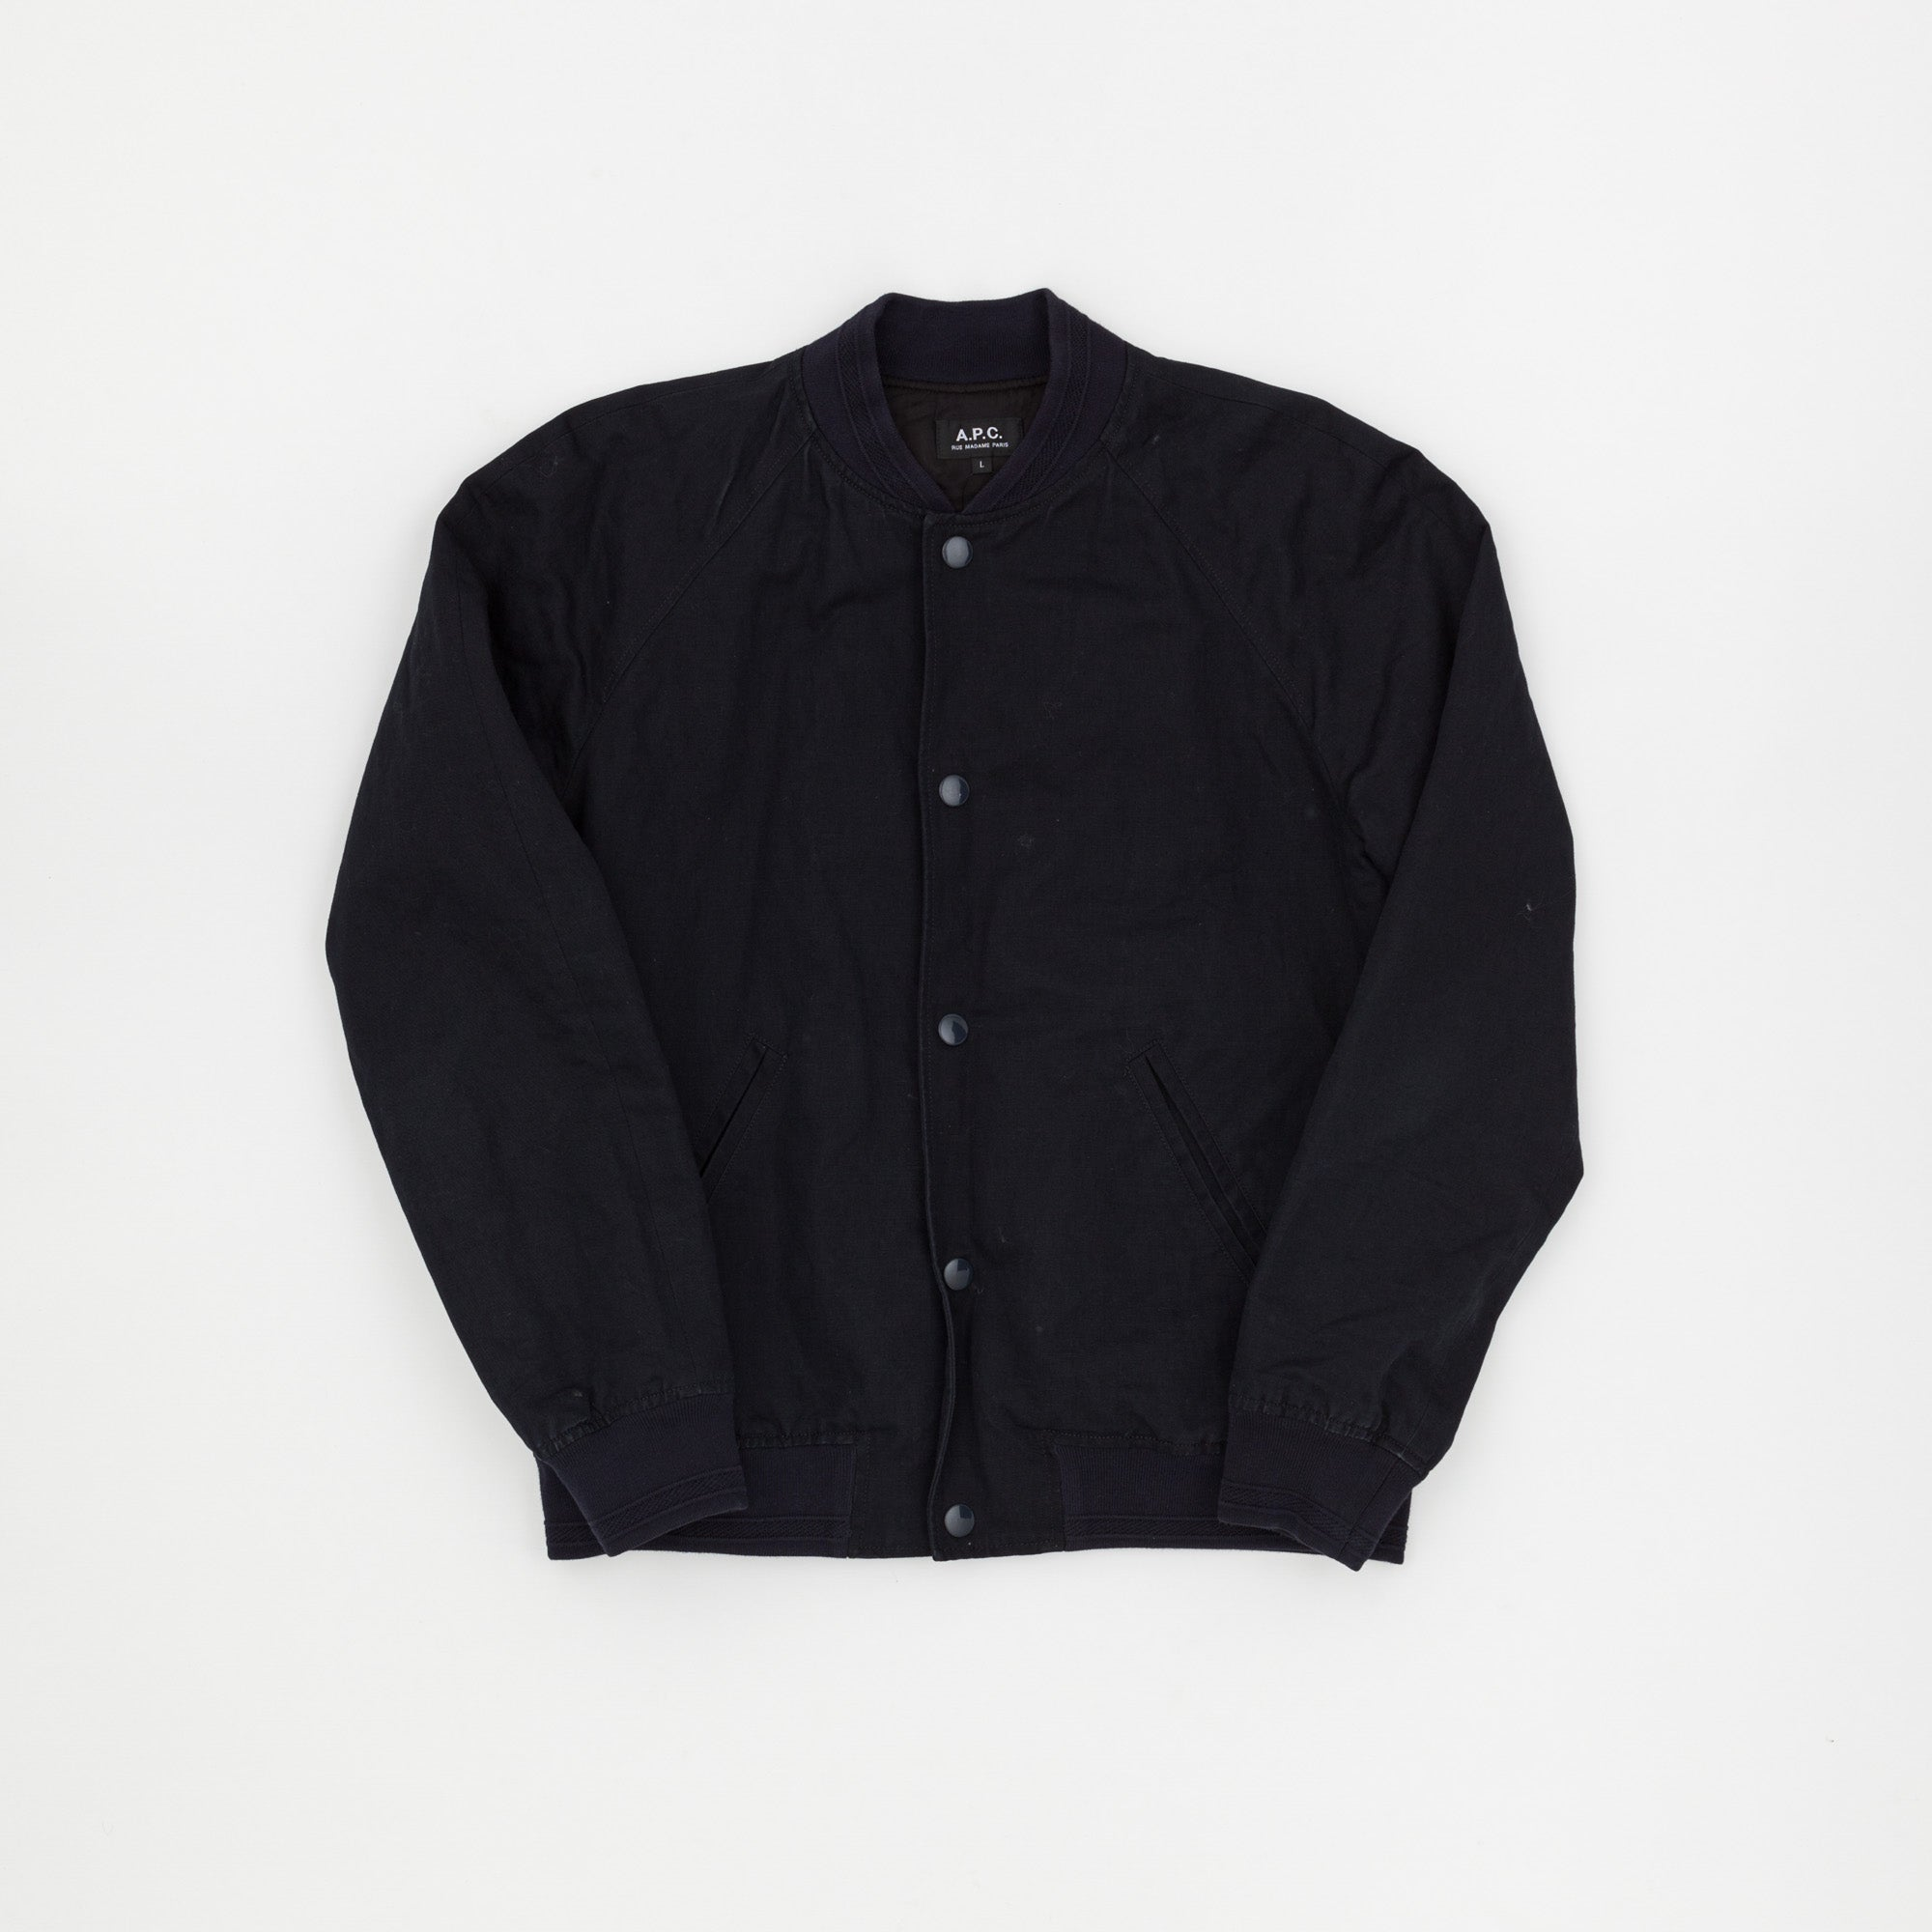 A.P.C Cotton Bomber Jacket